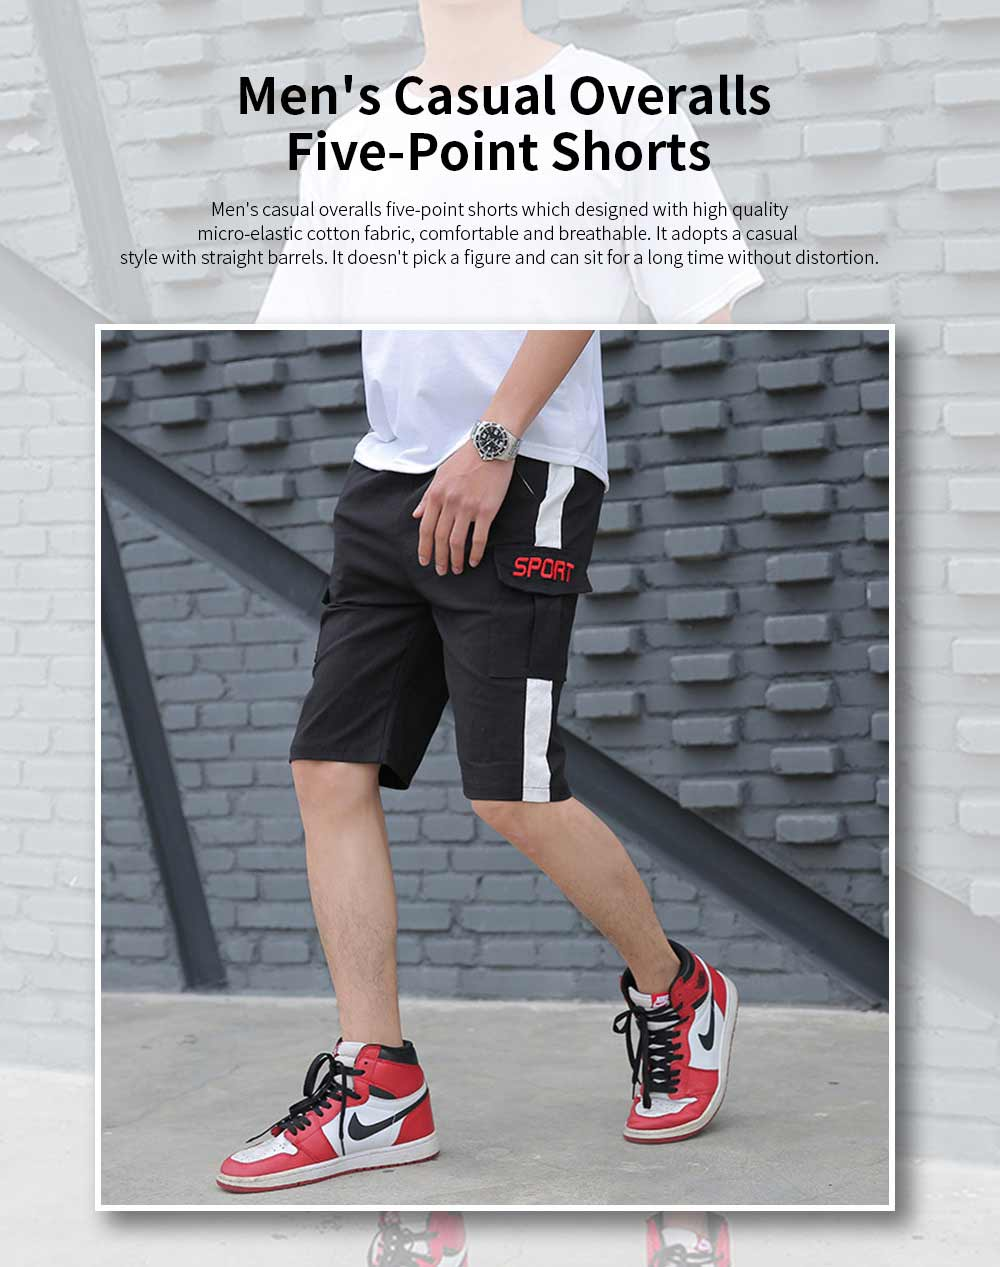 Men's Casual Overalls Shorts Students' Five-Point Shorts New Fashion Pocket Pants For Summer 0